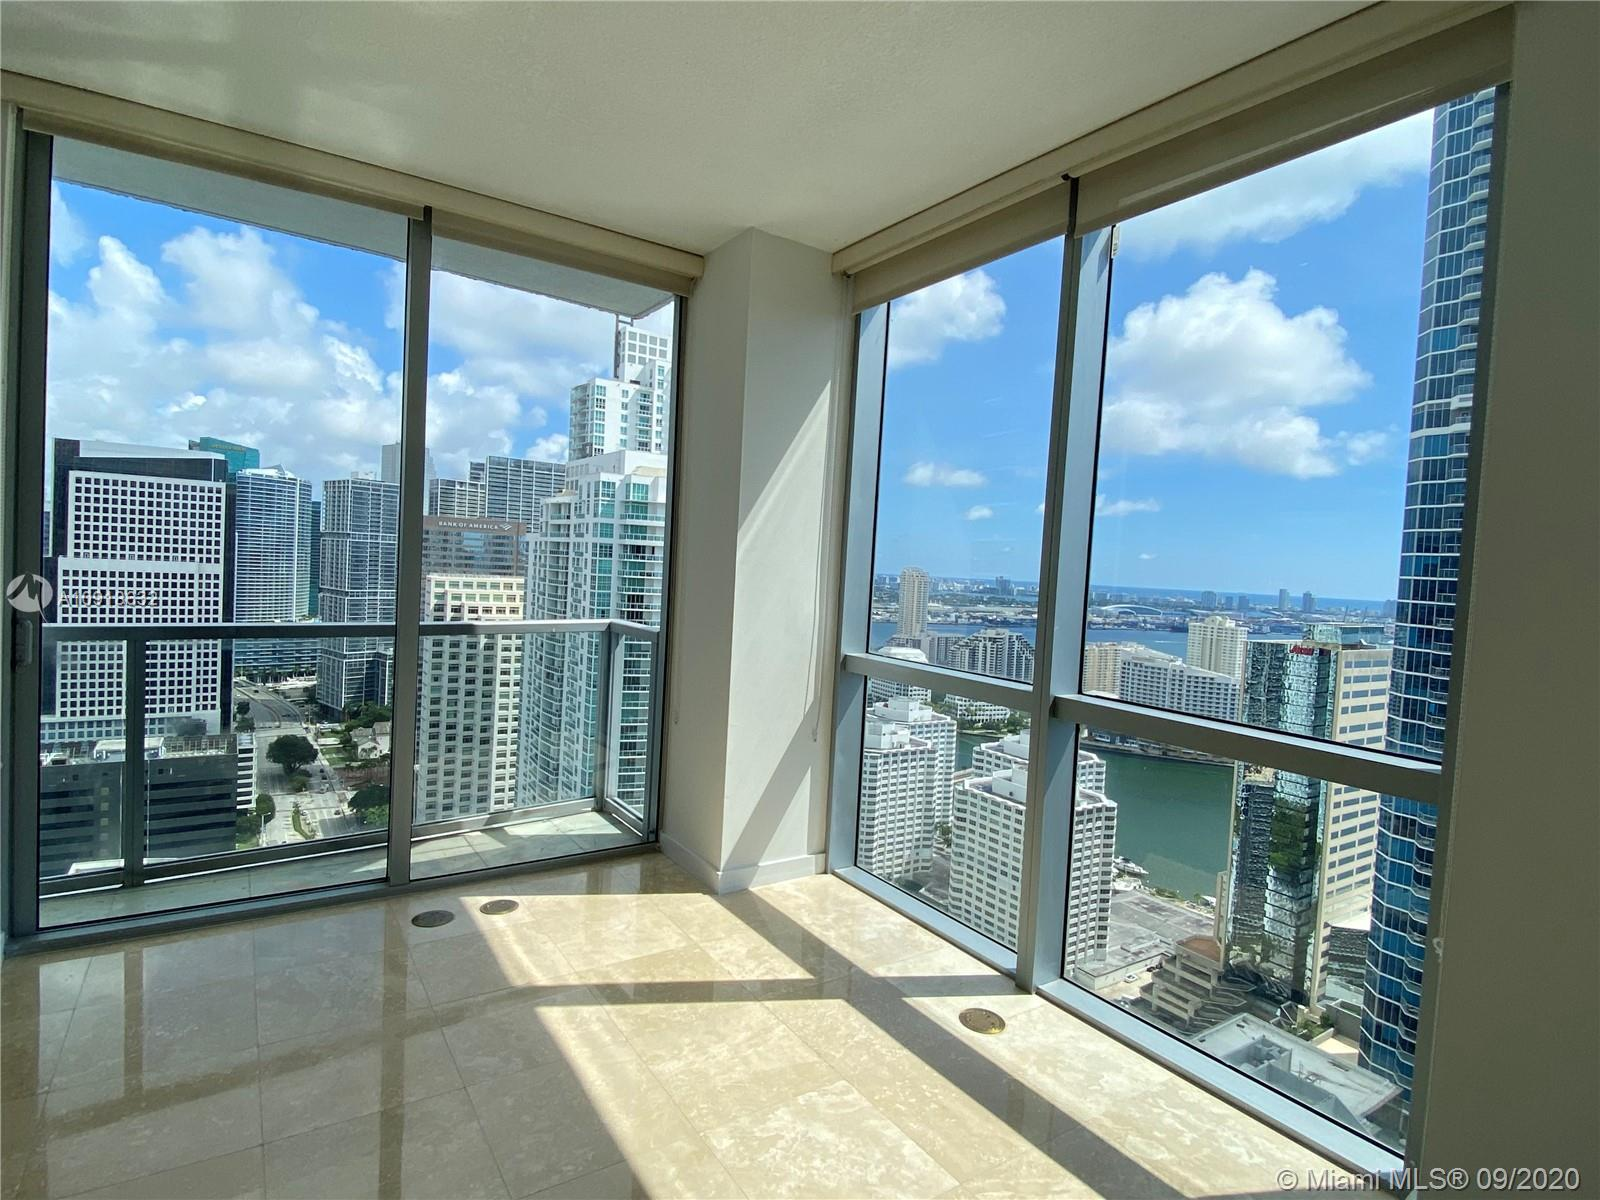 PREMIER UNIT, BEST LINE IN THE BUILDING. OPEN AND BRIGHT 2/2.5 UNIT WITH SPECTACULAR VIEWS IN THE HEART OF BRICKELL. UNIT IS IN PRISTINE CONDITION AND READY TO MOVE IN. BUILDING INCLUDES RESORT STYLE AMENITIES SUCH AS POOL, SPA, BILLARD ROOM, GYM, PARTY ROOM, ETC. WALKING DISTANCE FROM BRICKELL CITY CENTRE, MARY BRICKELL VILLAGE, RESTAURANTS, SHOPS, ETC.